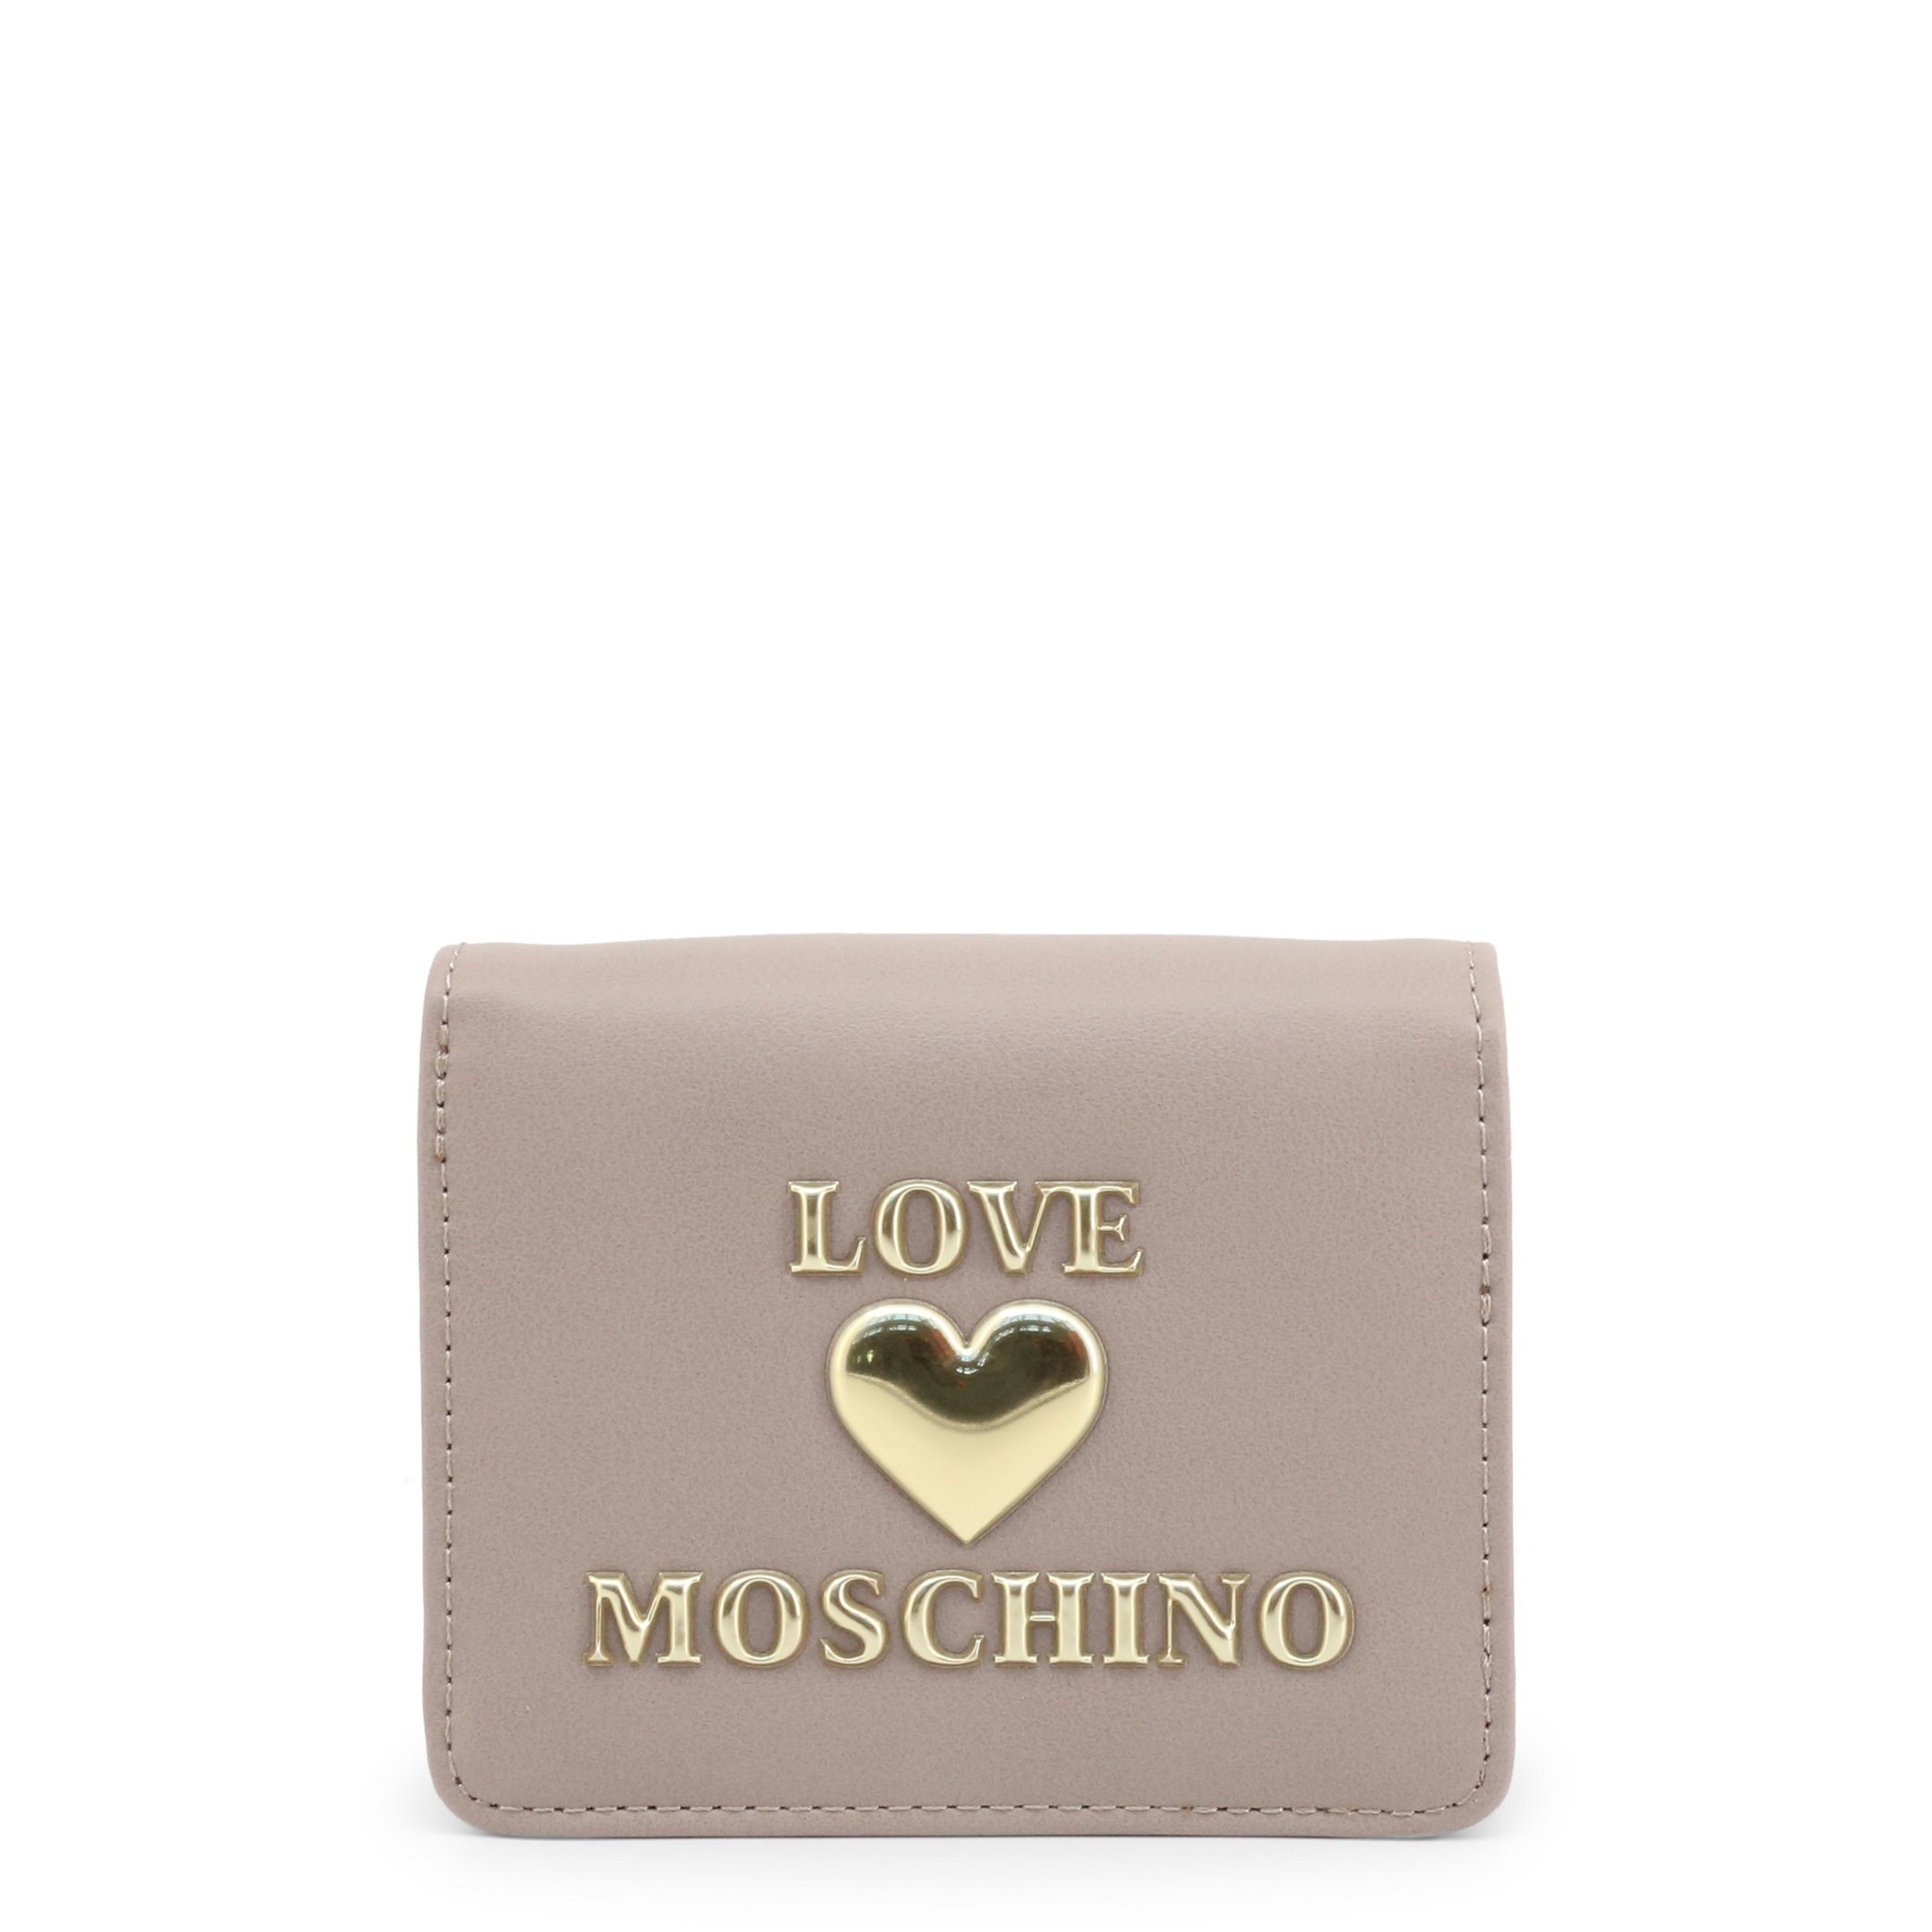 Love Moschino Women's Wallet Various Colours JC5614PP1BLE - brown NOSIZE